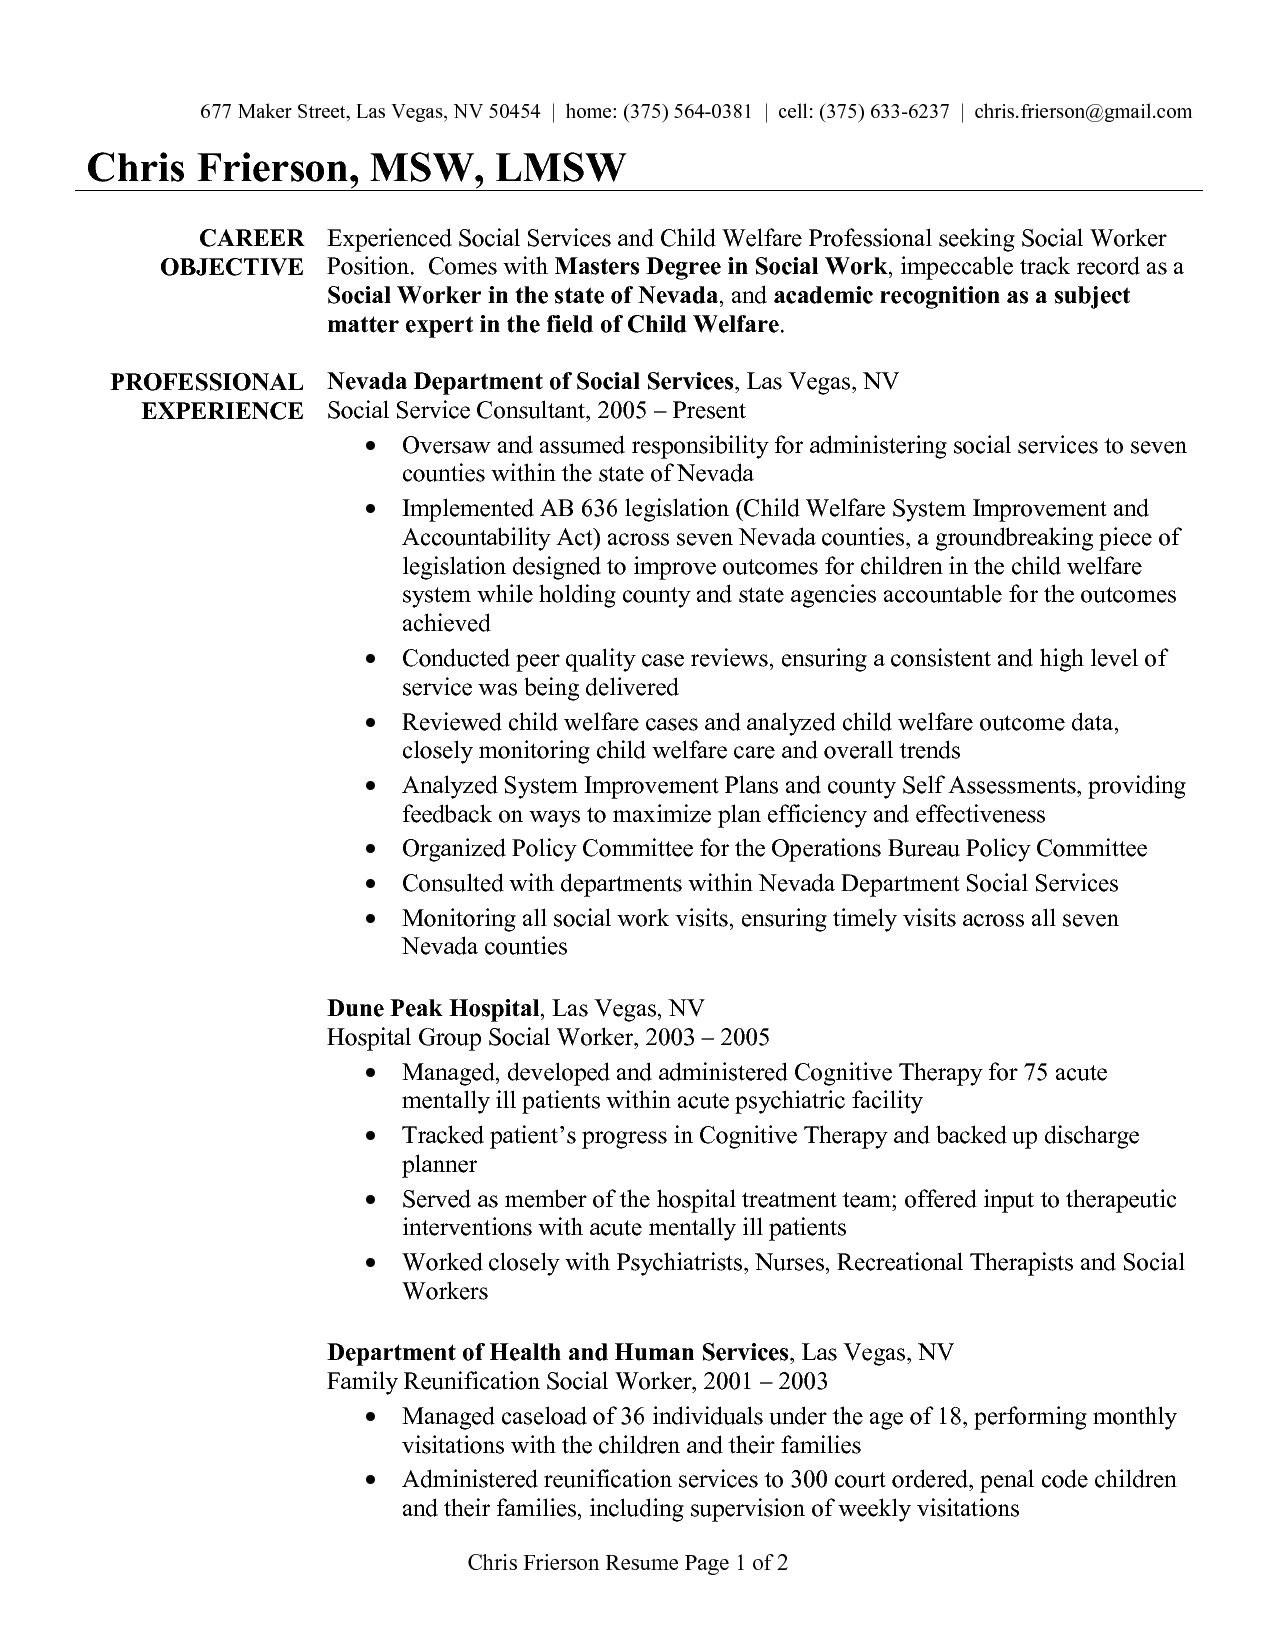 Social Work Resume Objective Statement SampleBusinessResume ...